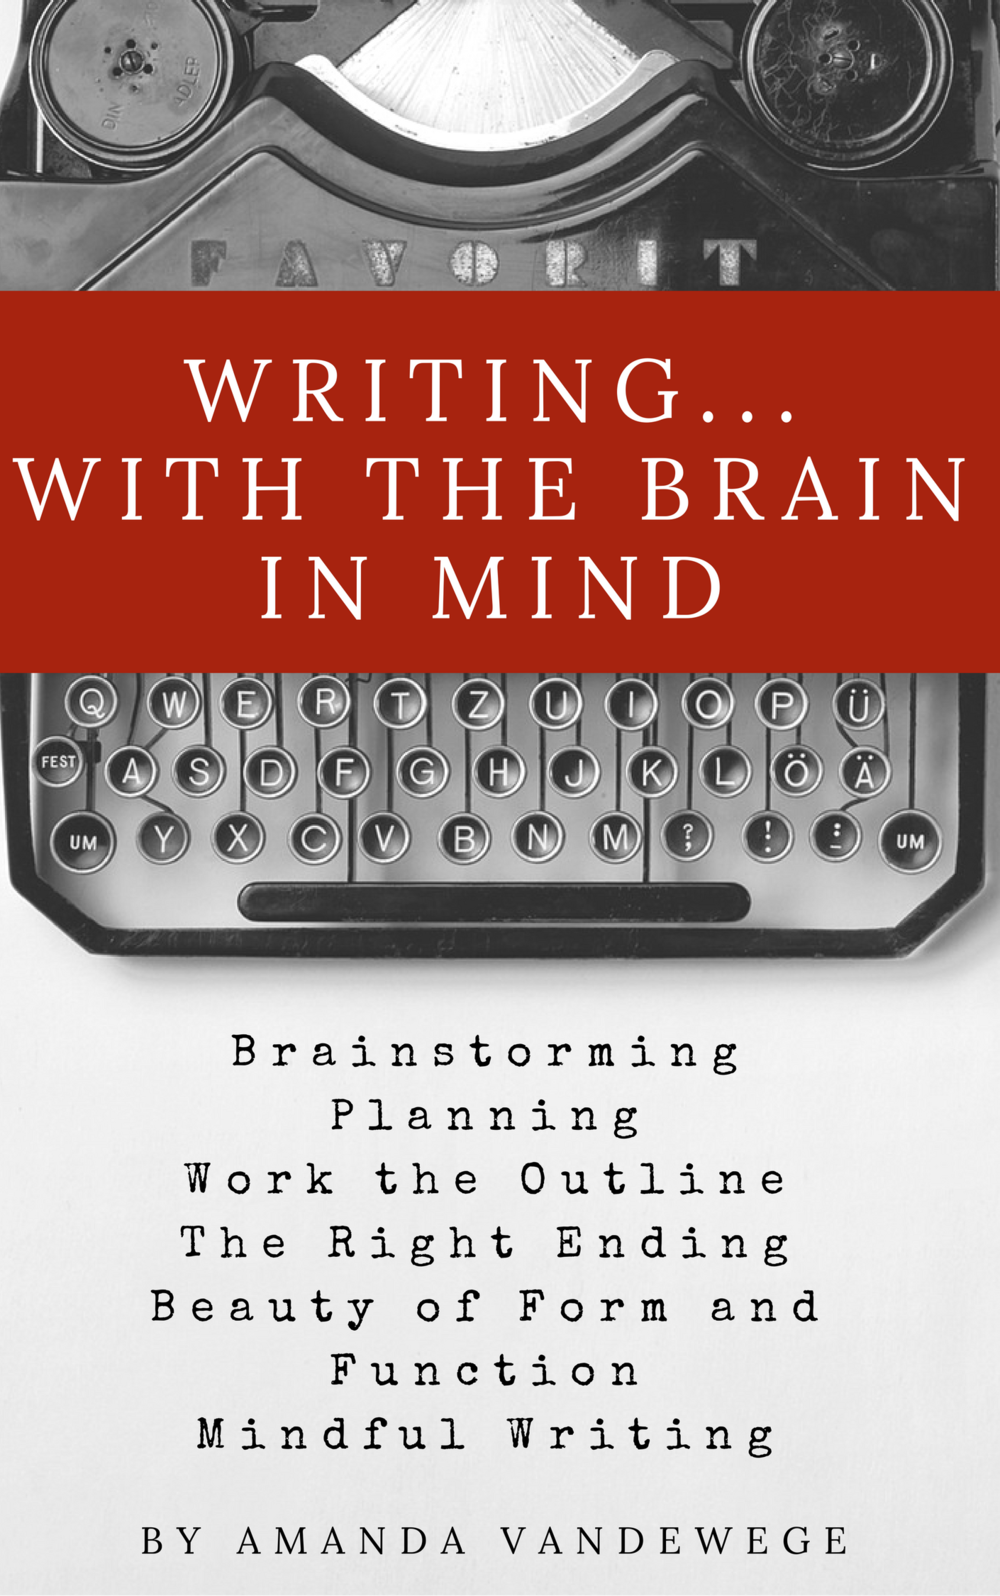 Writing...With the Brain in Mind